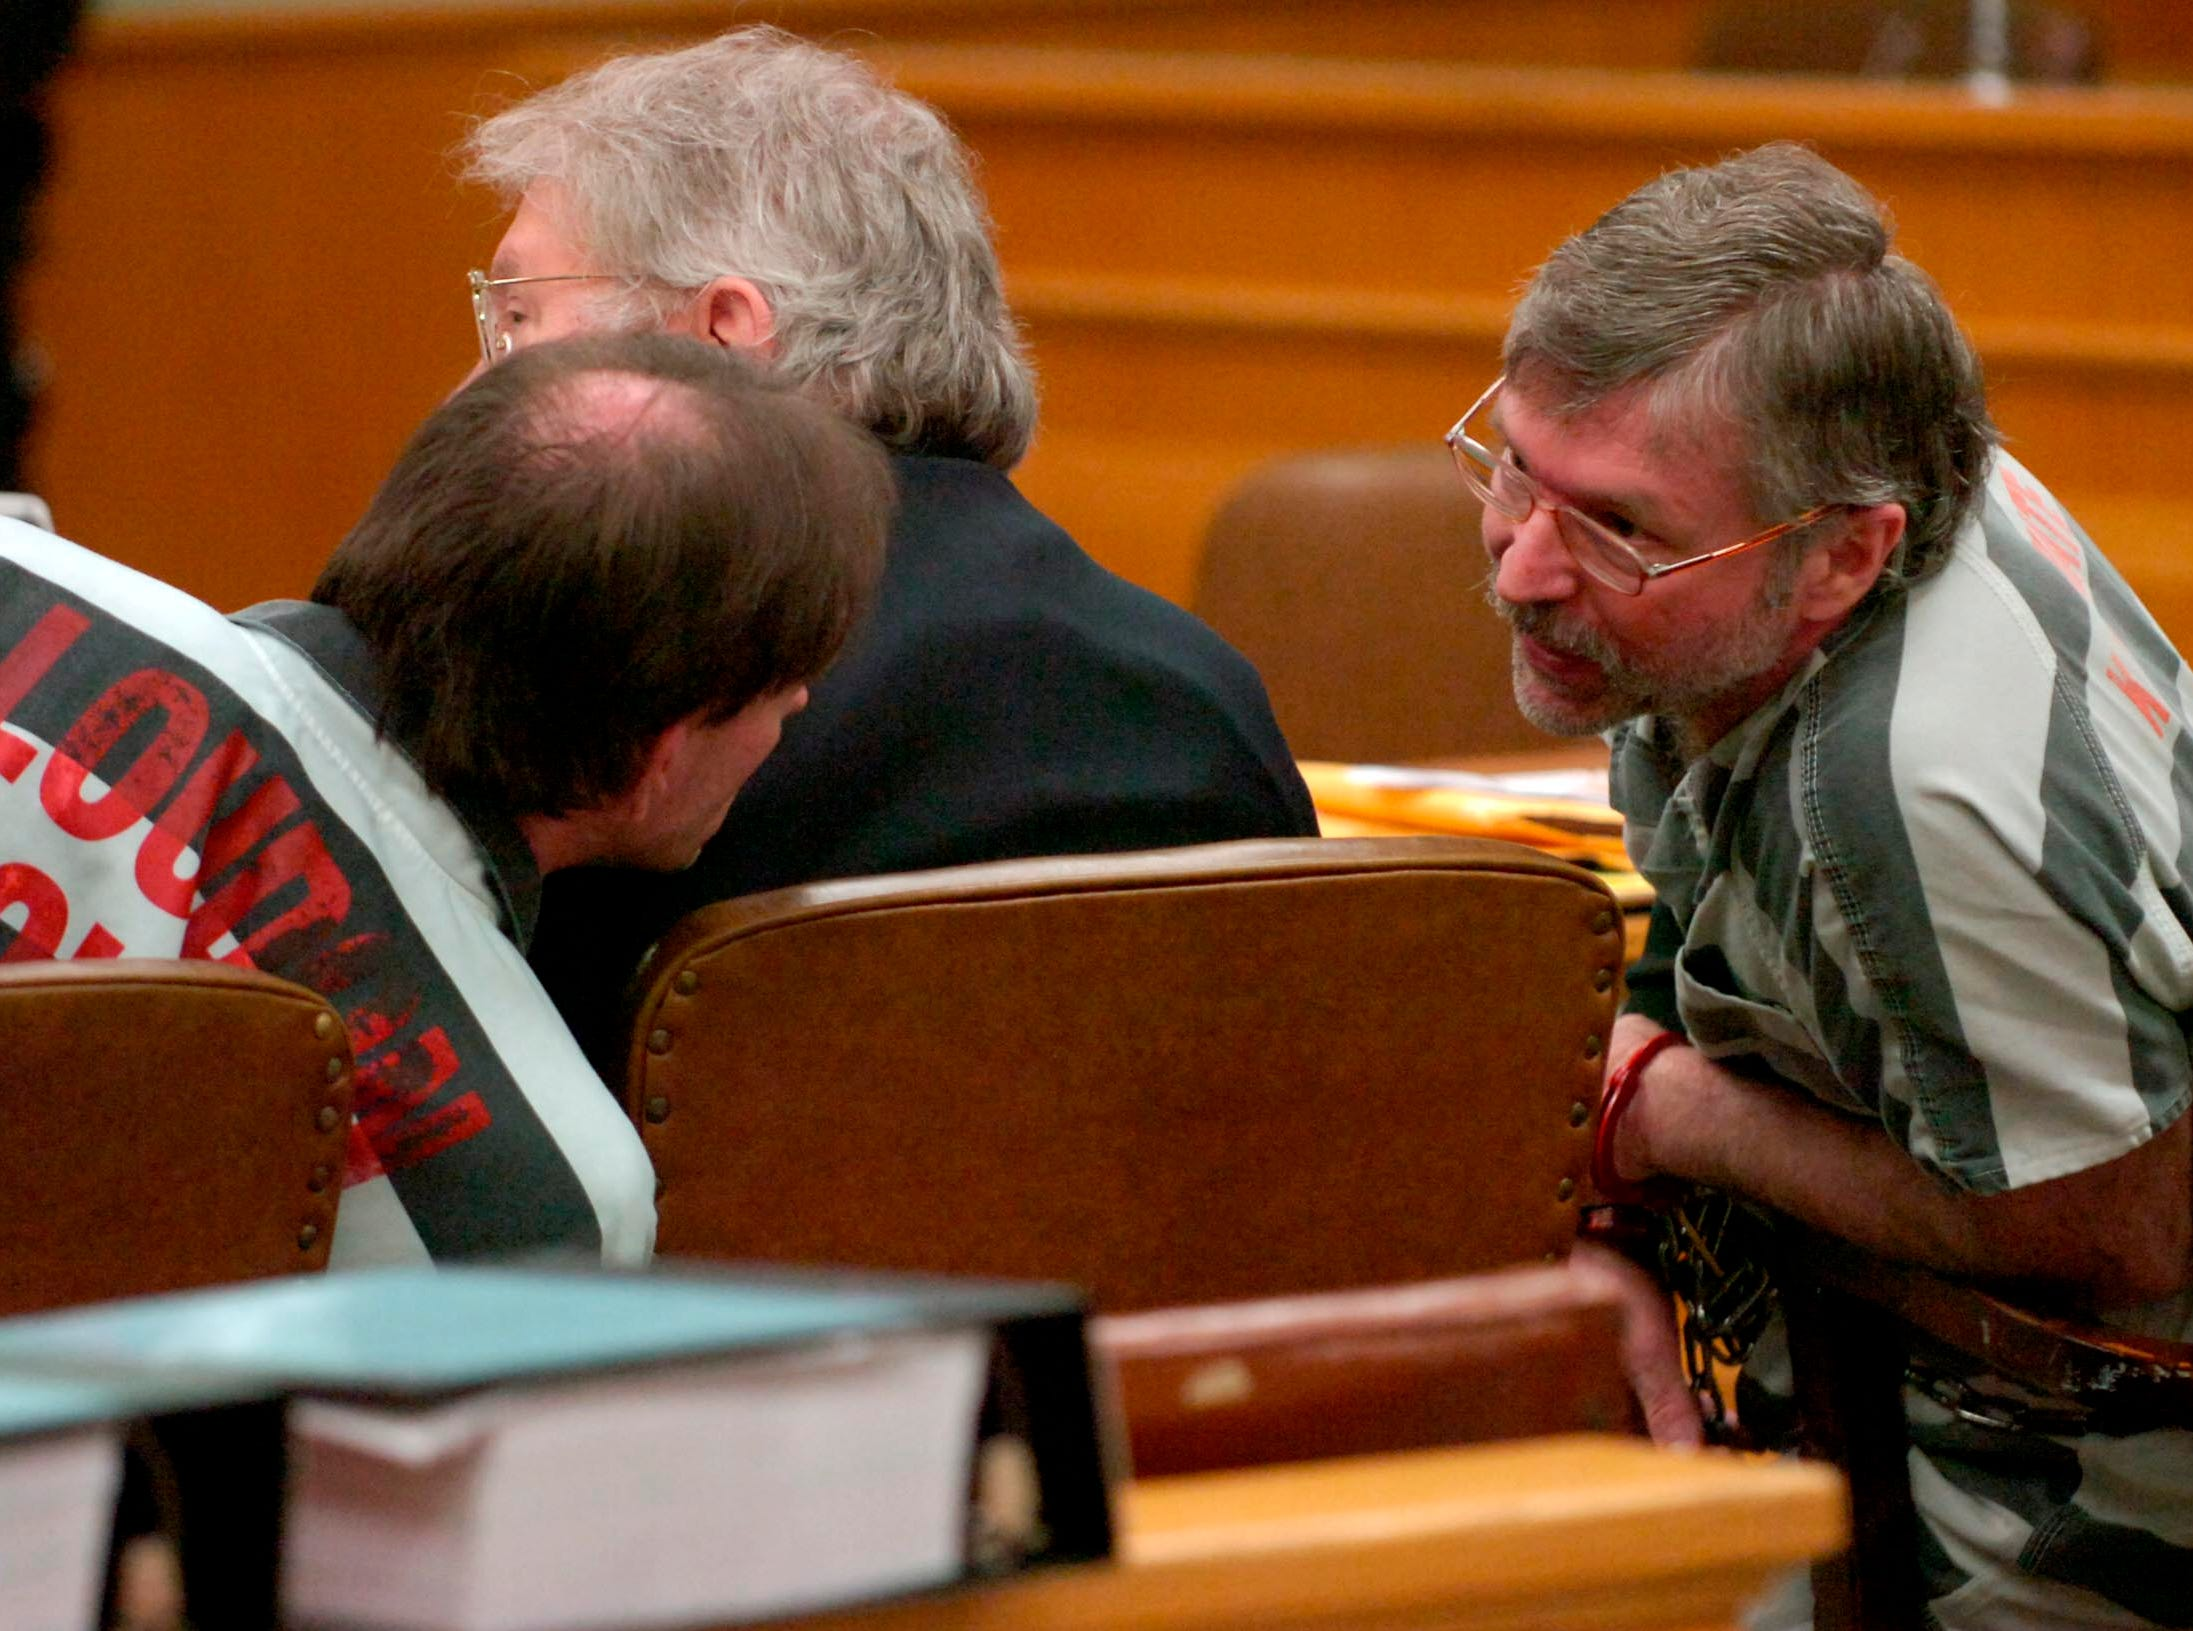 Leon Houston, left, and Rocky Houston, right, talk during their preliminary hearing in Roane County Sessions Court Thursday morning in the deaths of two men on May 11, 2006. Leon's second attorney in between the brothers is Charles Courier.